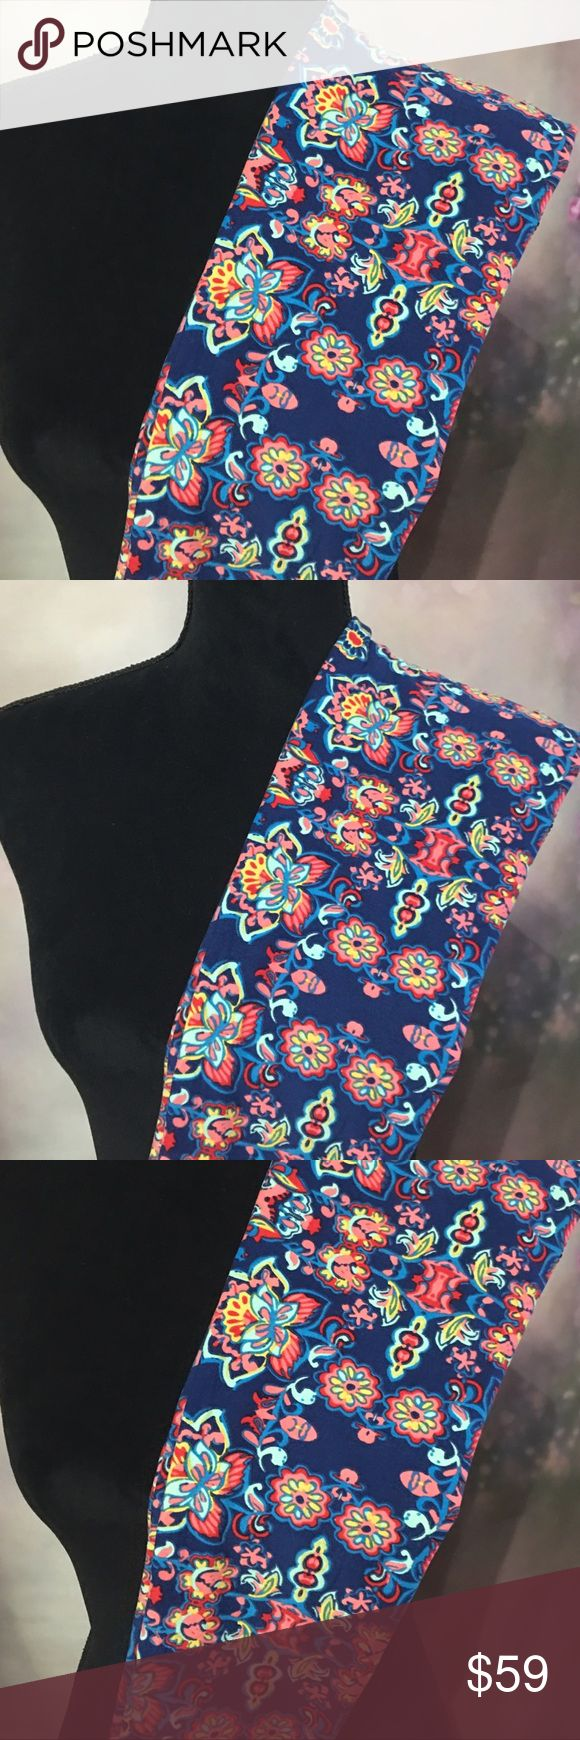 Lularoe NWT OS Leggings Floral Favorite These sell fast.  Beautiful colorful & vibrant legging. LuLaRoe Other